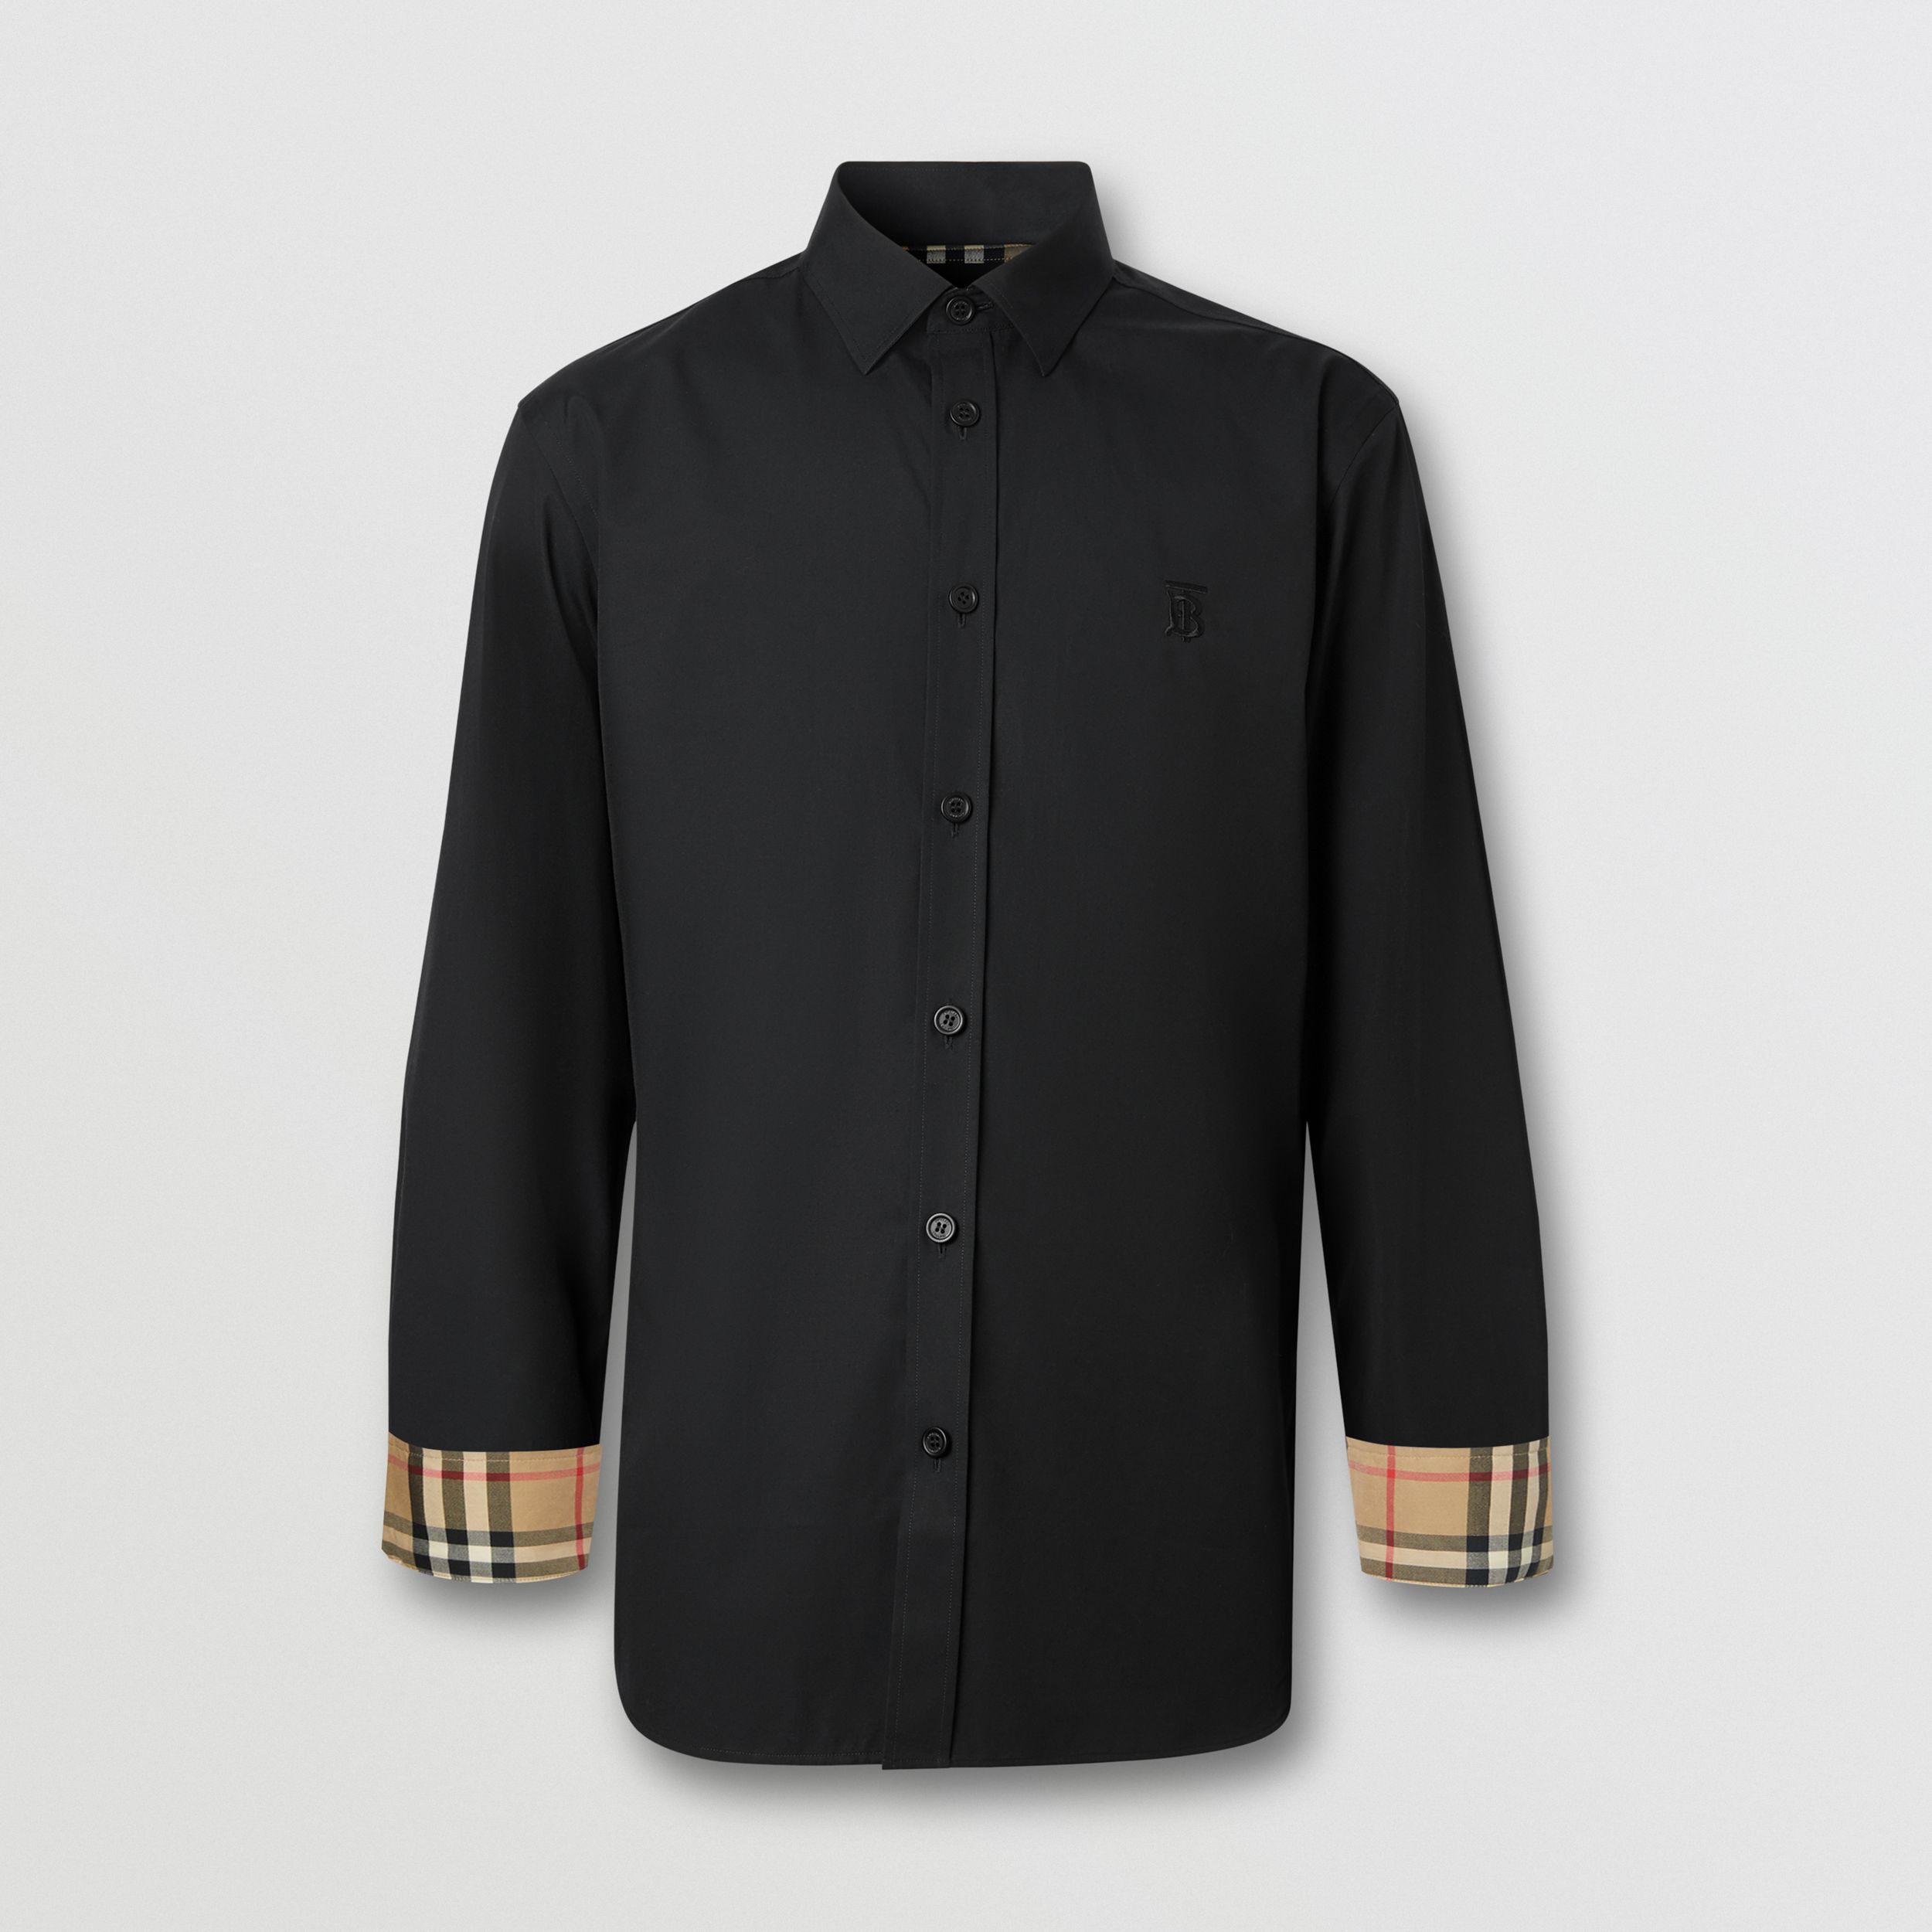 Slim Fit Monogram Motif Stretch Cotton Poplin Shirt in Black - Men | Burberry - 4